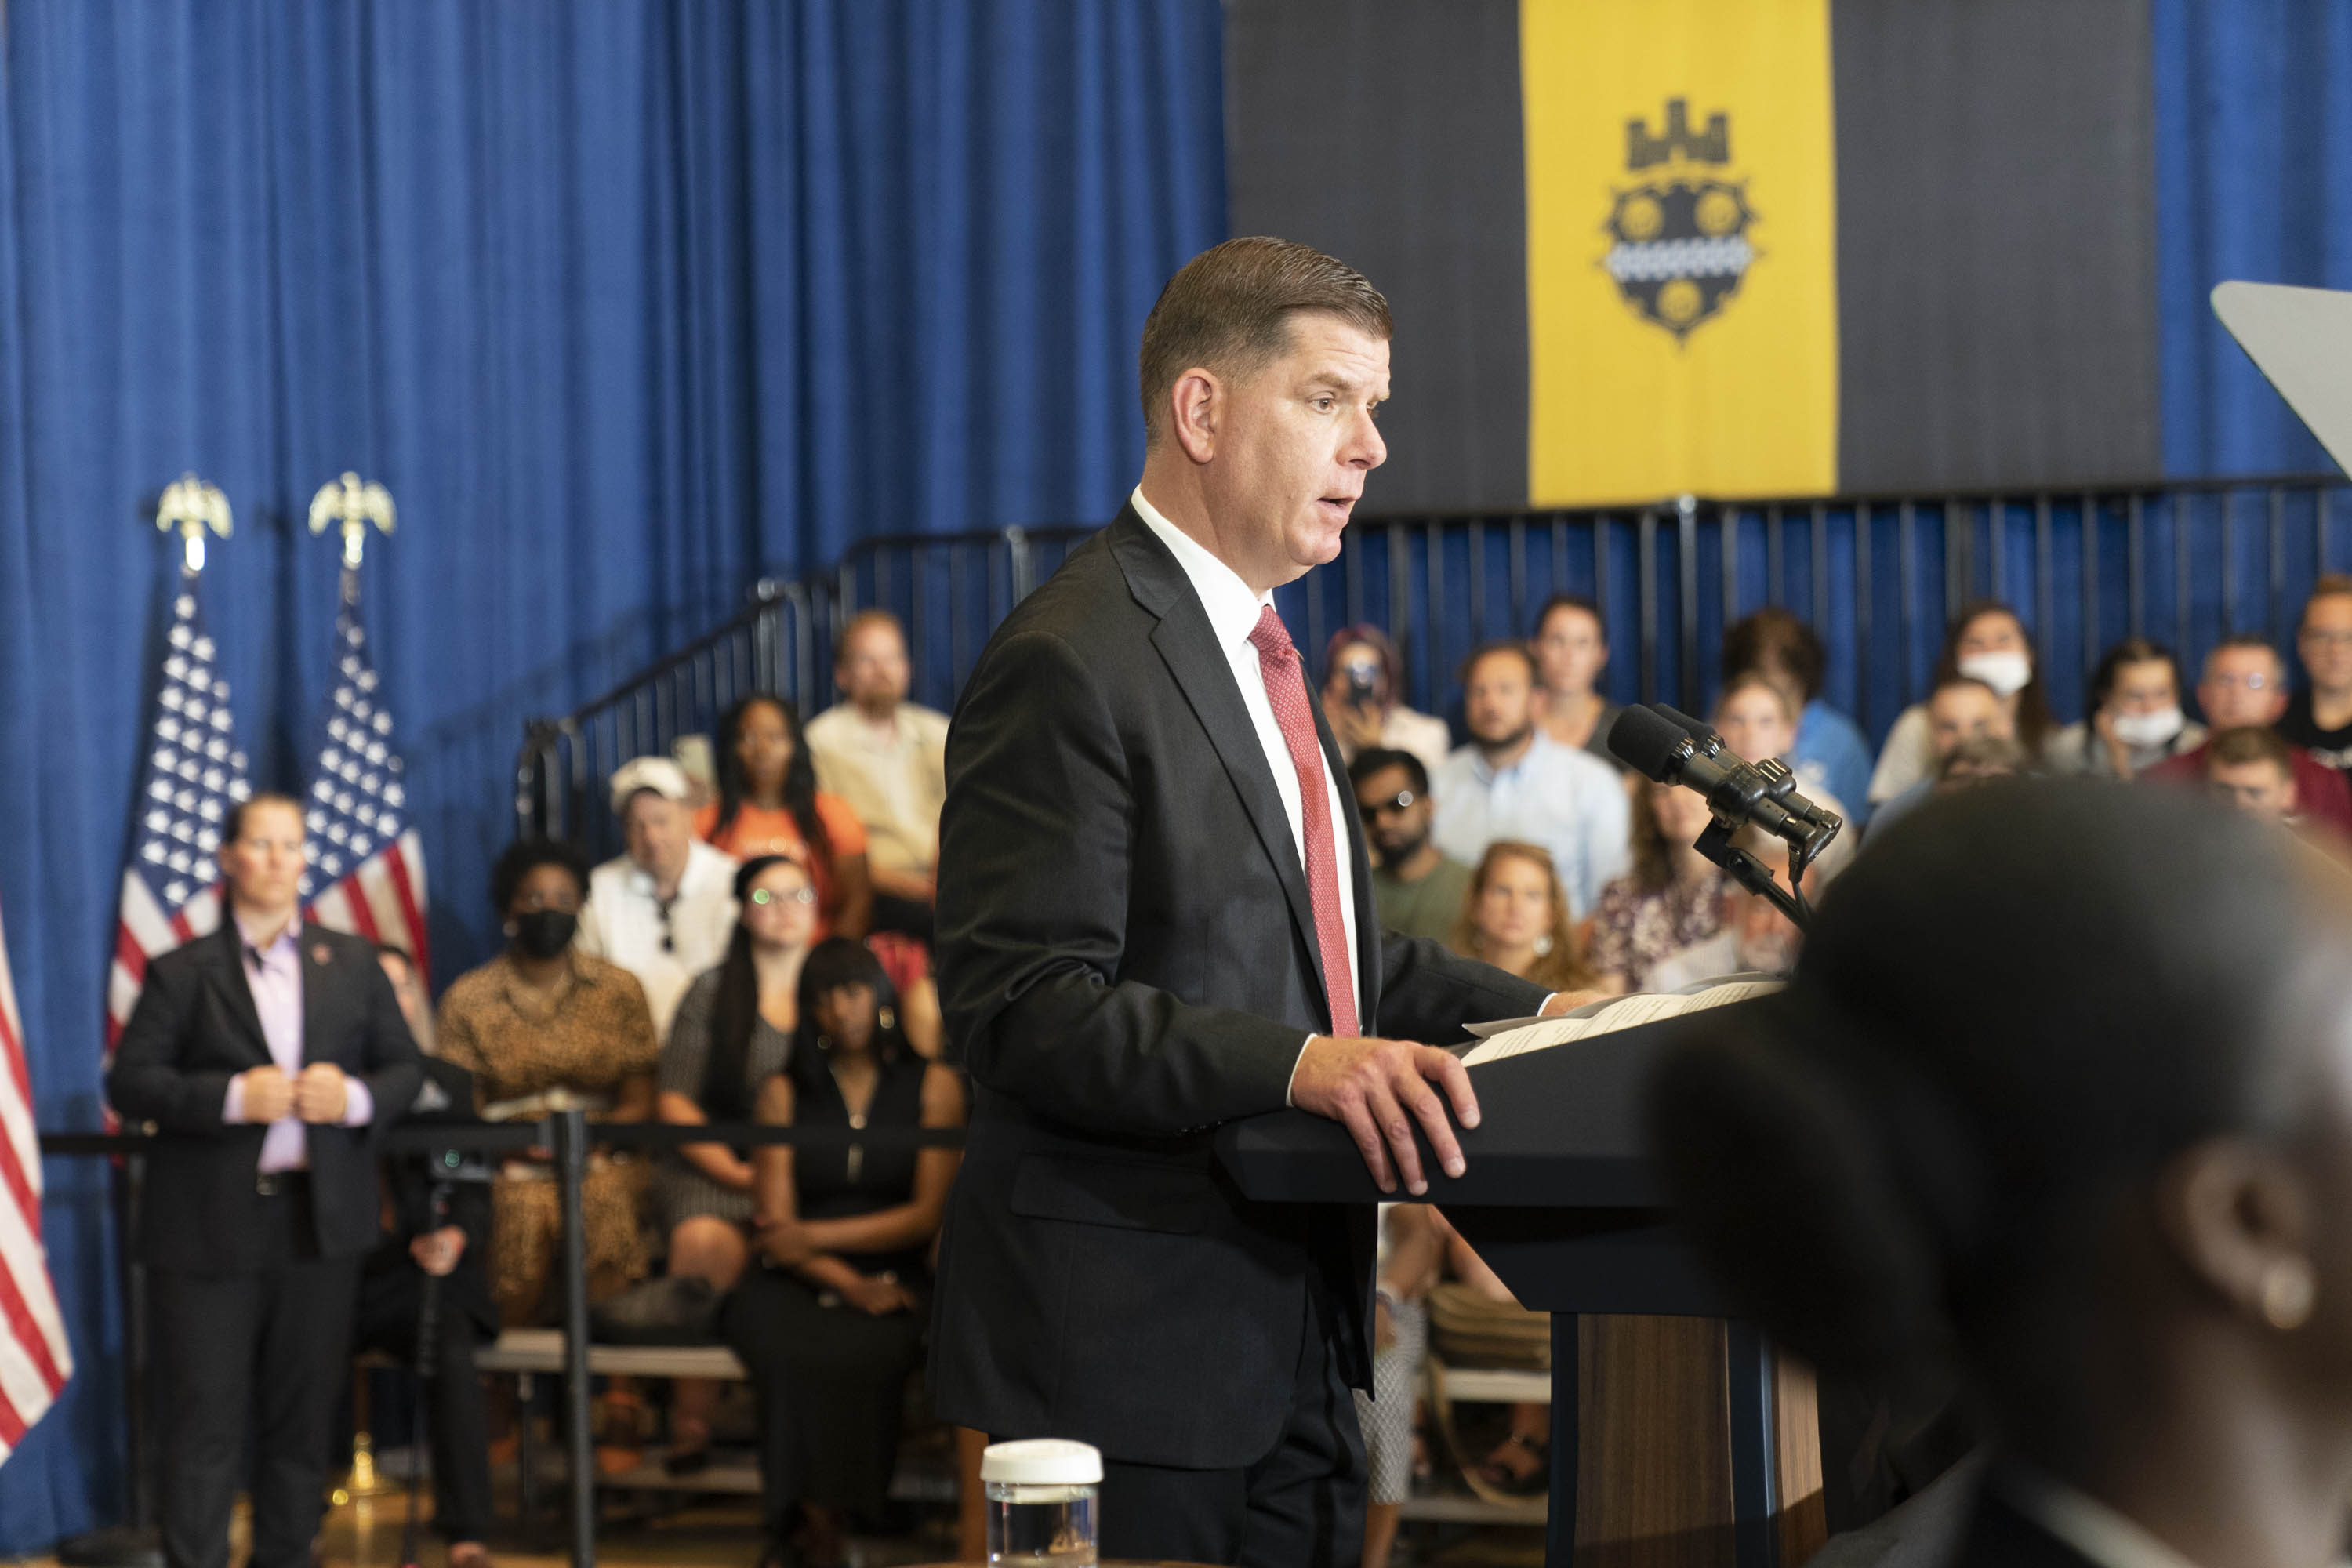 Secretary Marty Walsh speaks to a crowd in Pittsburgh